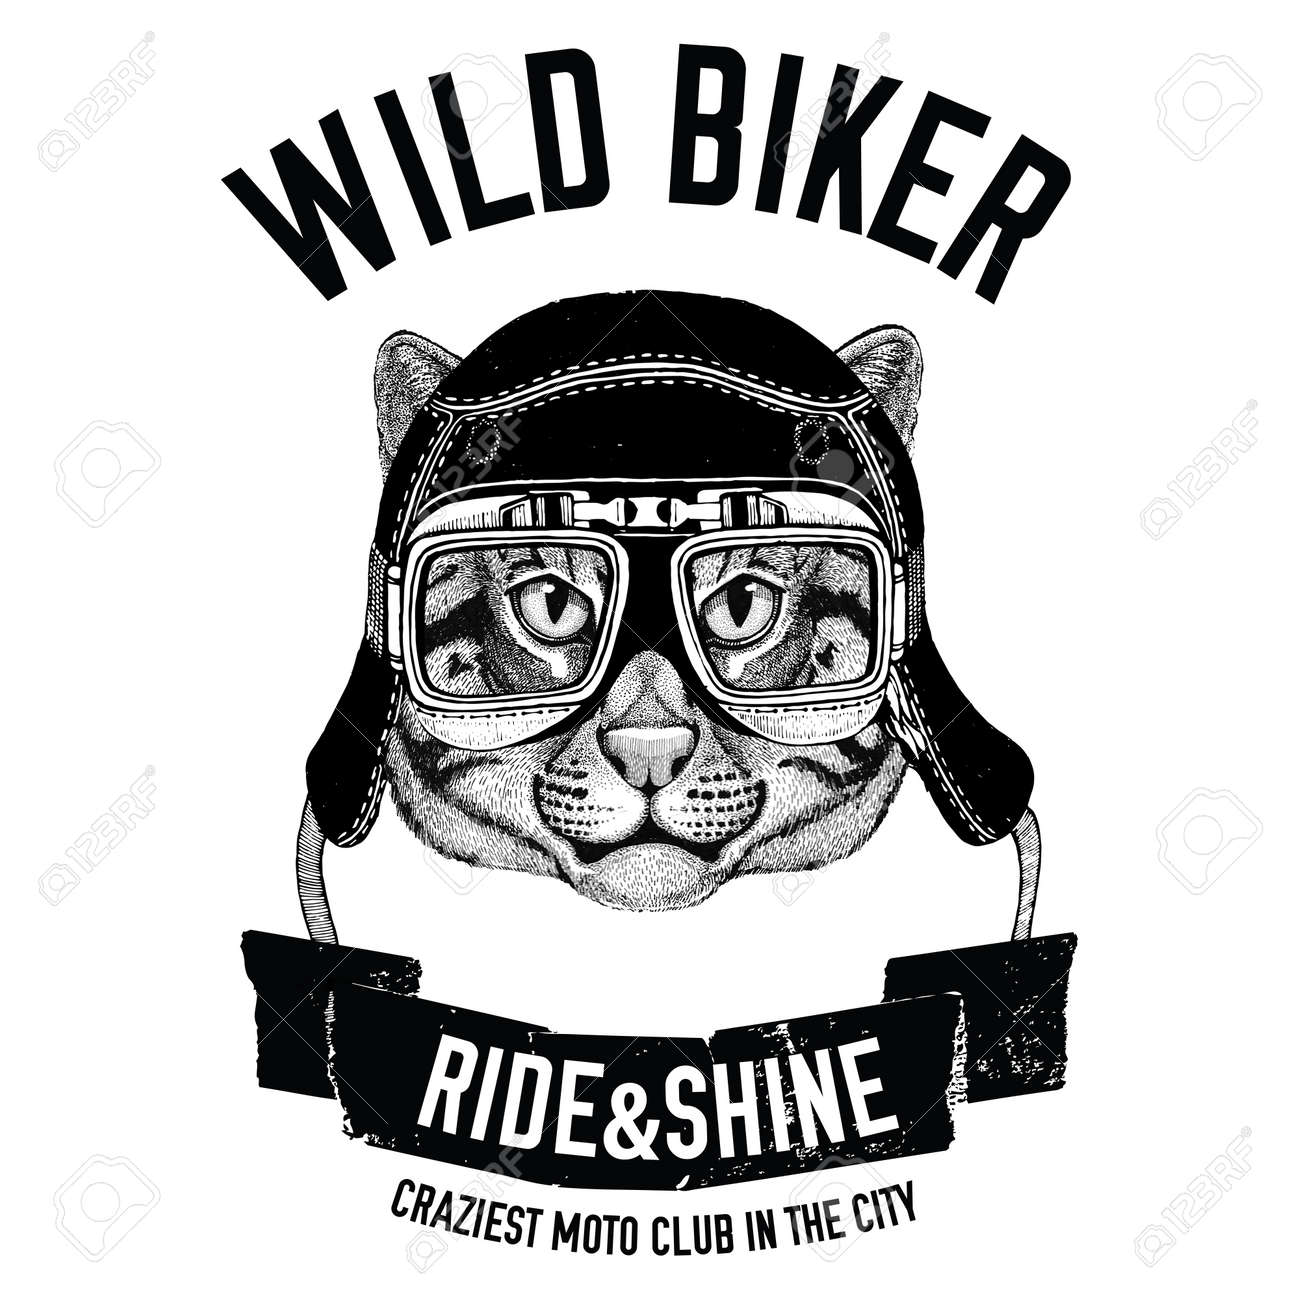 Vintage Images Of Fishing Cat For T Shirt Design For Motorcycle